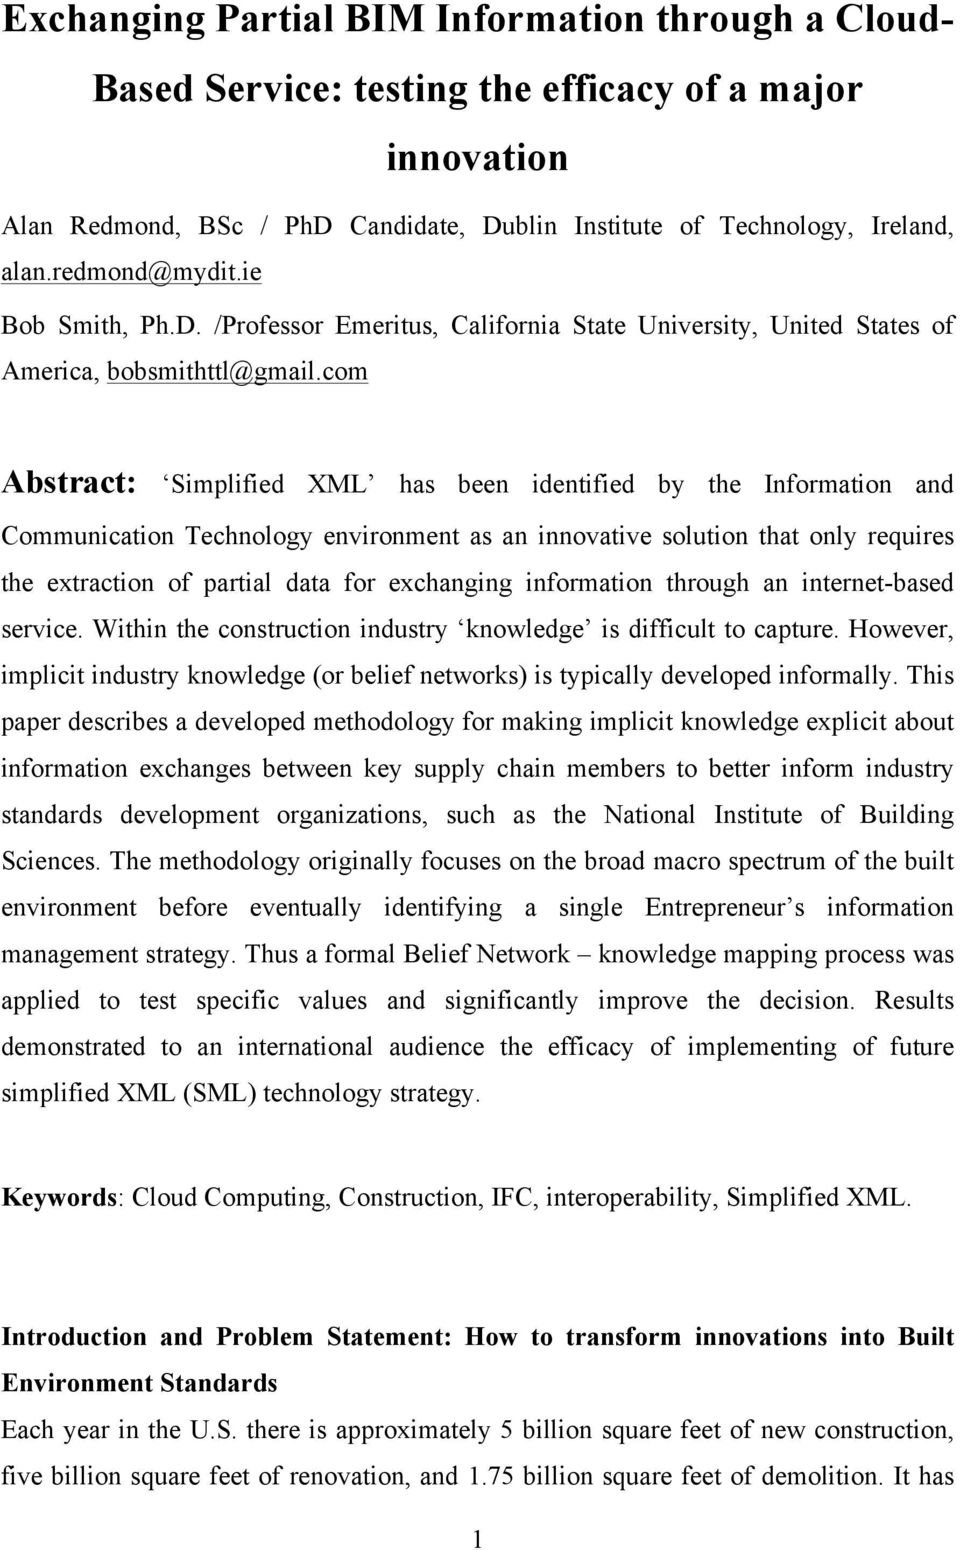 com Abstract: Simplified XML has been identified by the Information and Communication Technology environment as an innovative solution that only requires the extraction of partial data for exchanging